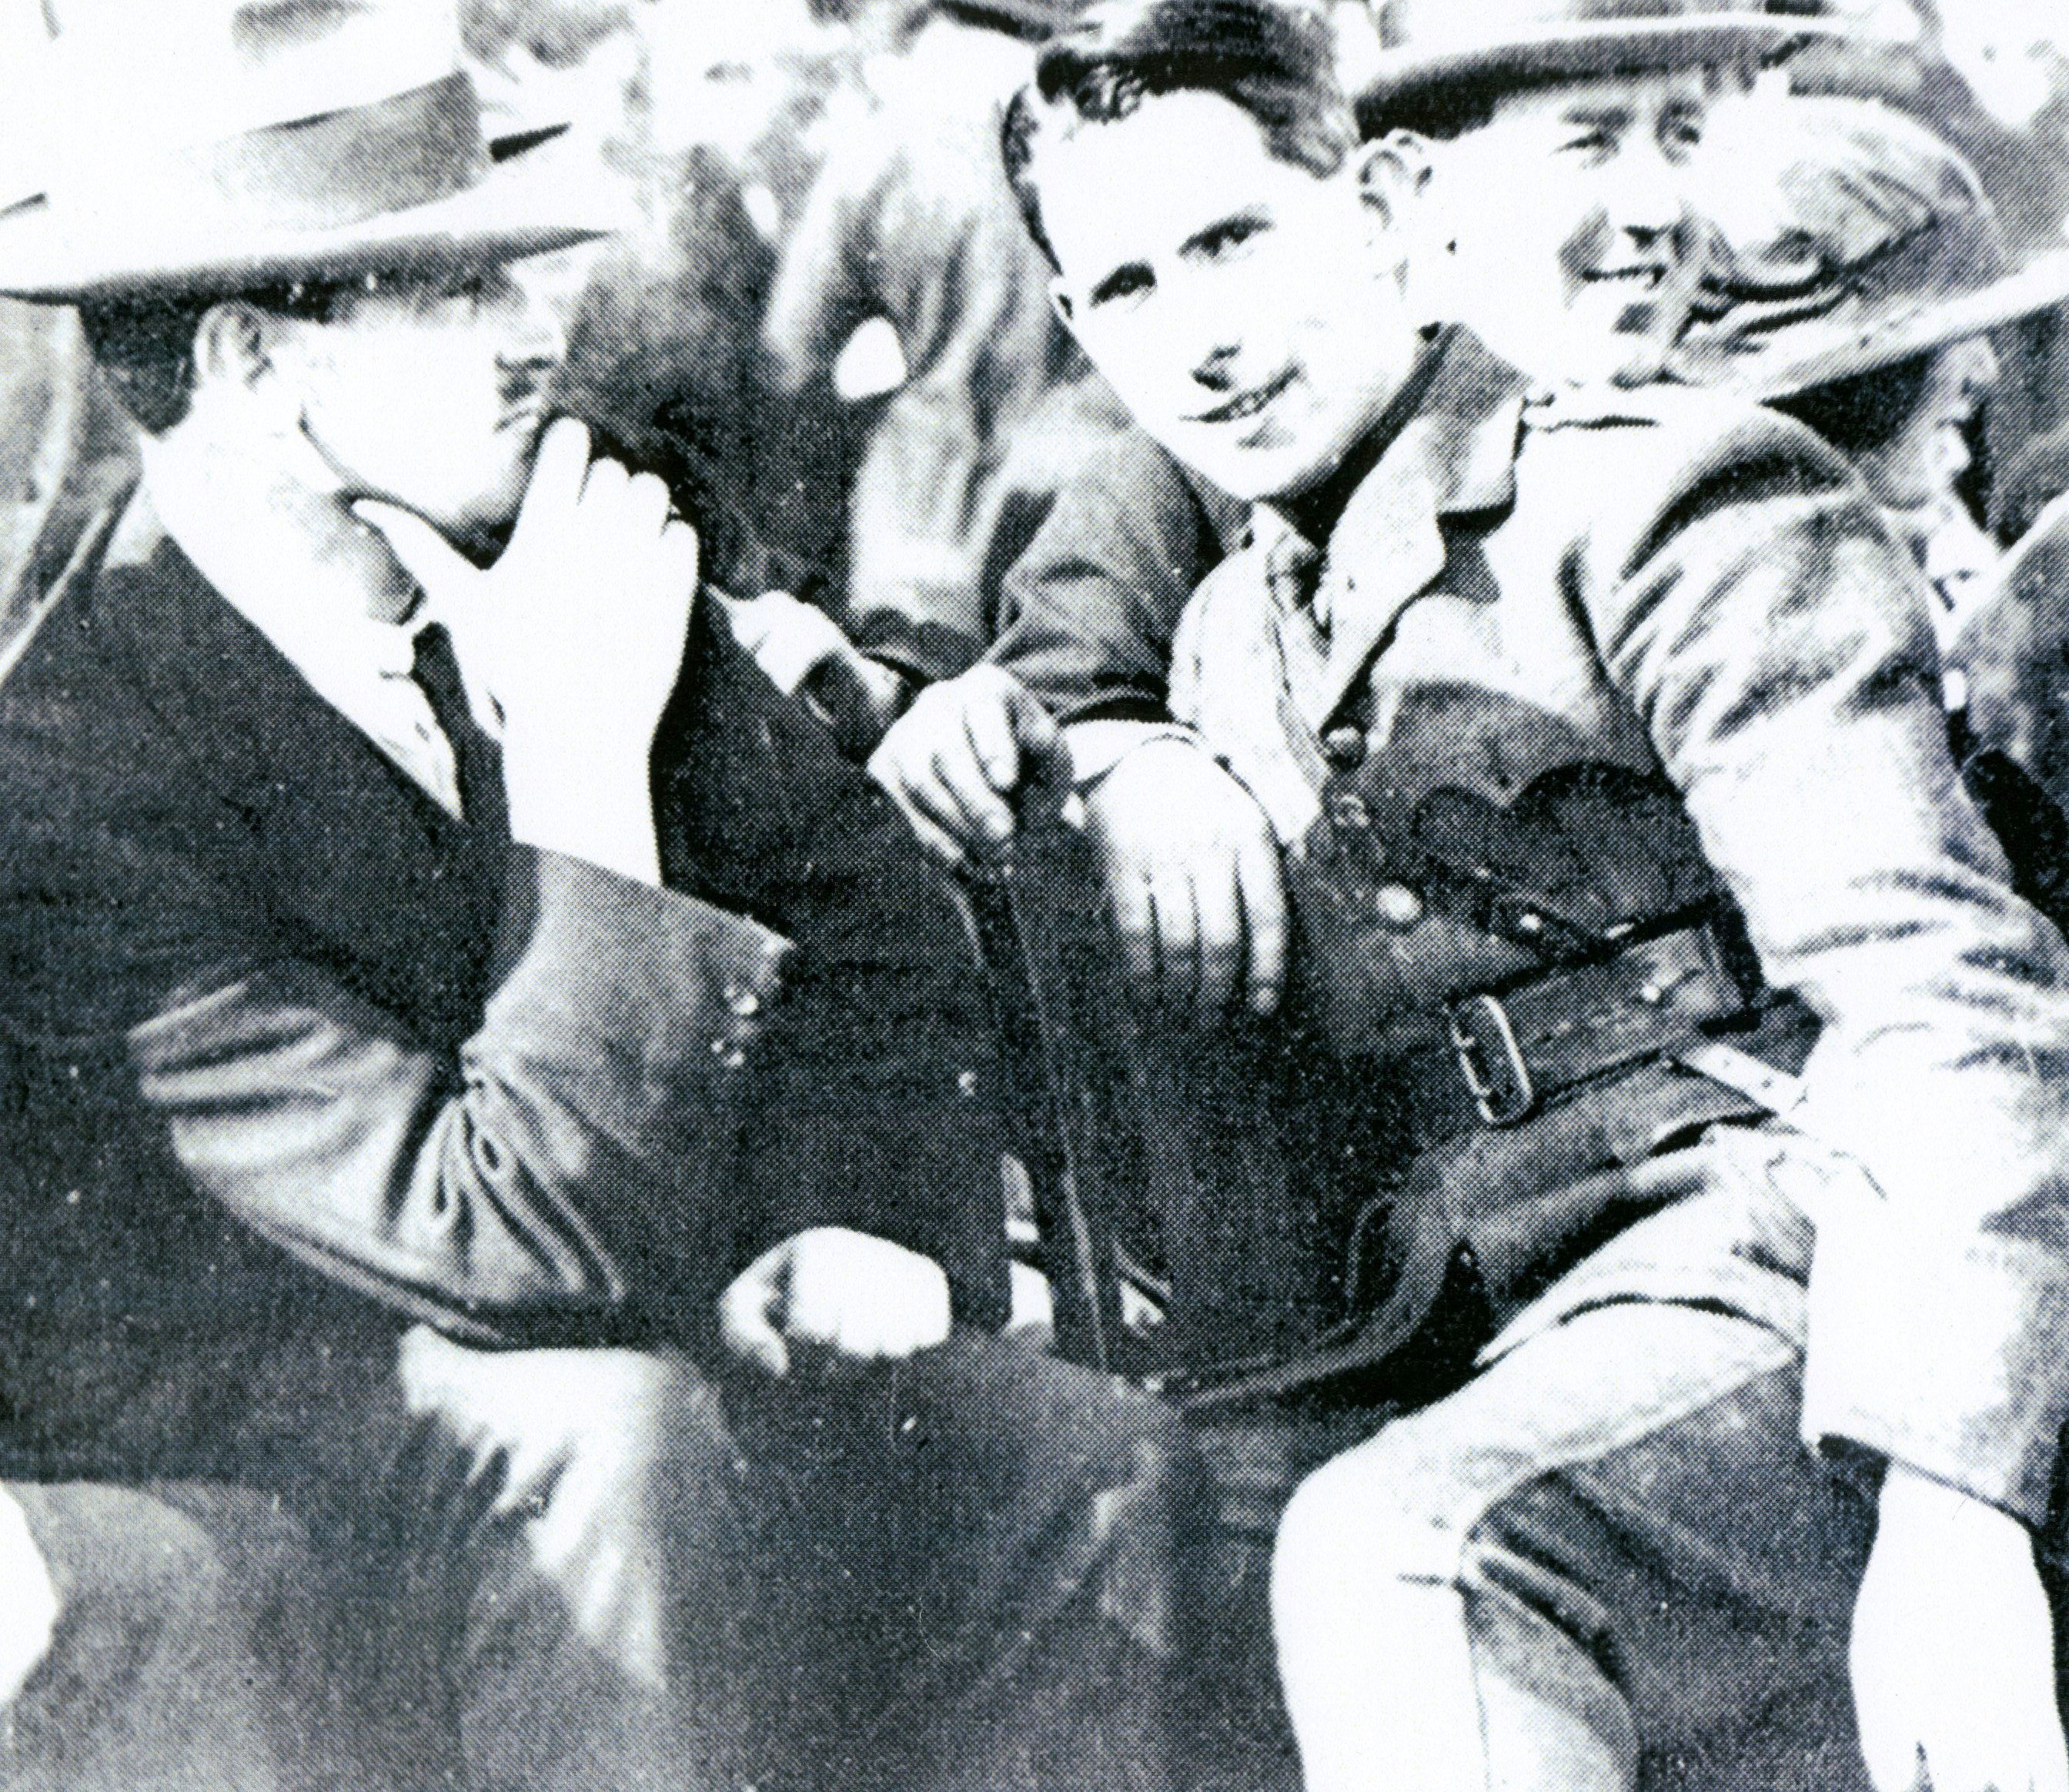 Michael Collins and General McKeown at Croke Park, 1921